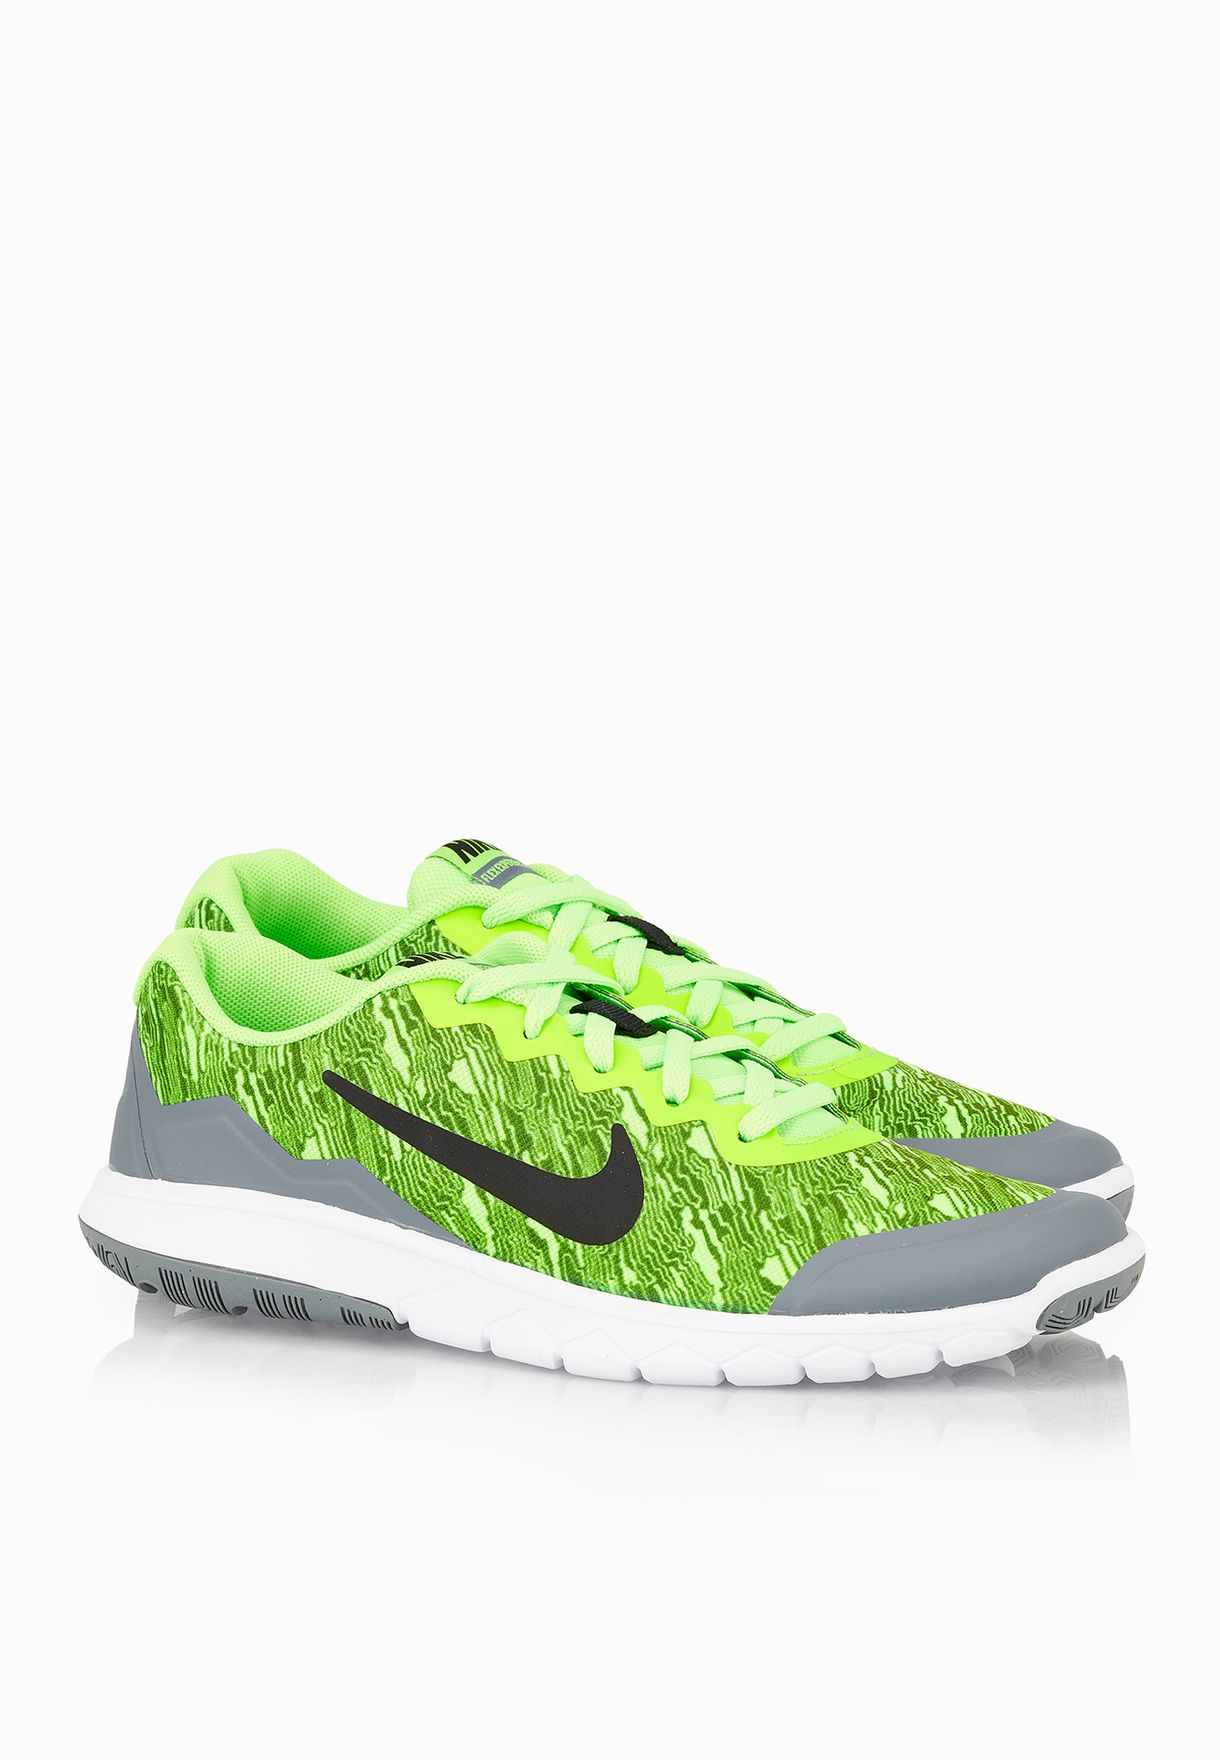 36e80f0cf13c8 Shop Nike prints Flex Experience 4 Youth 749811-300 for Kids in ...